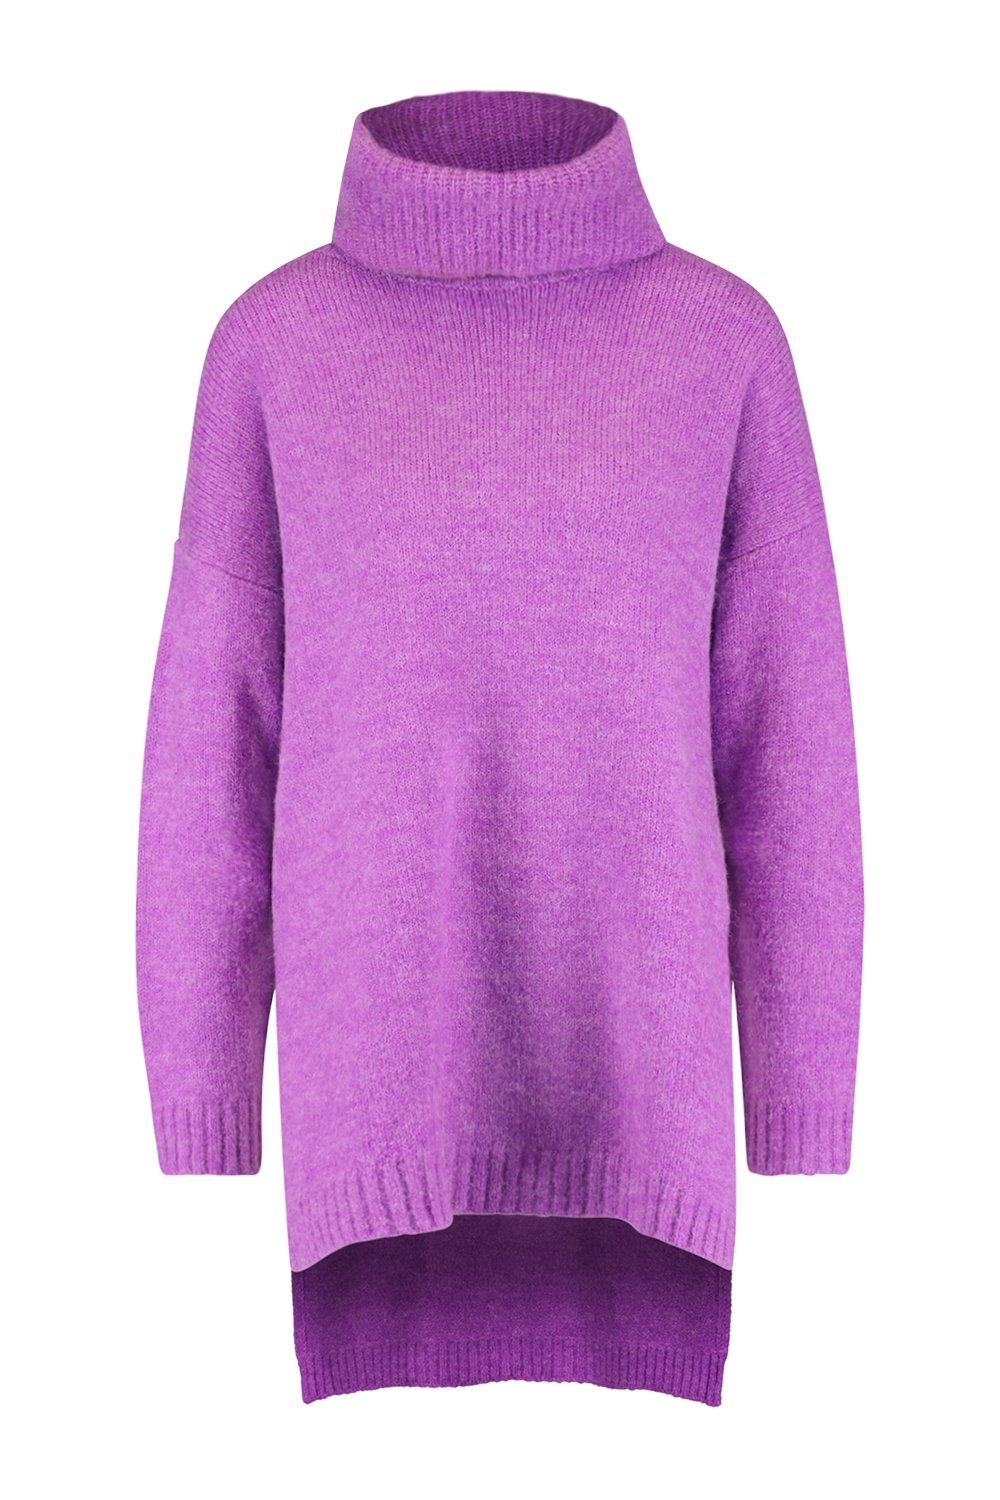 Roll Neck Premium Oversized Jumper purple vXxTw4qw